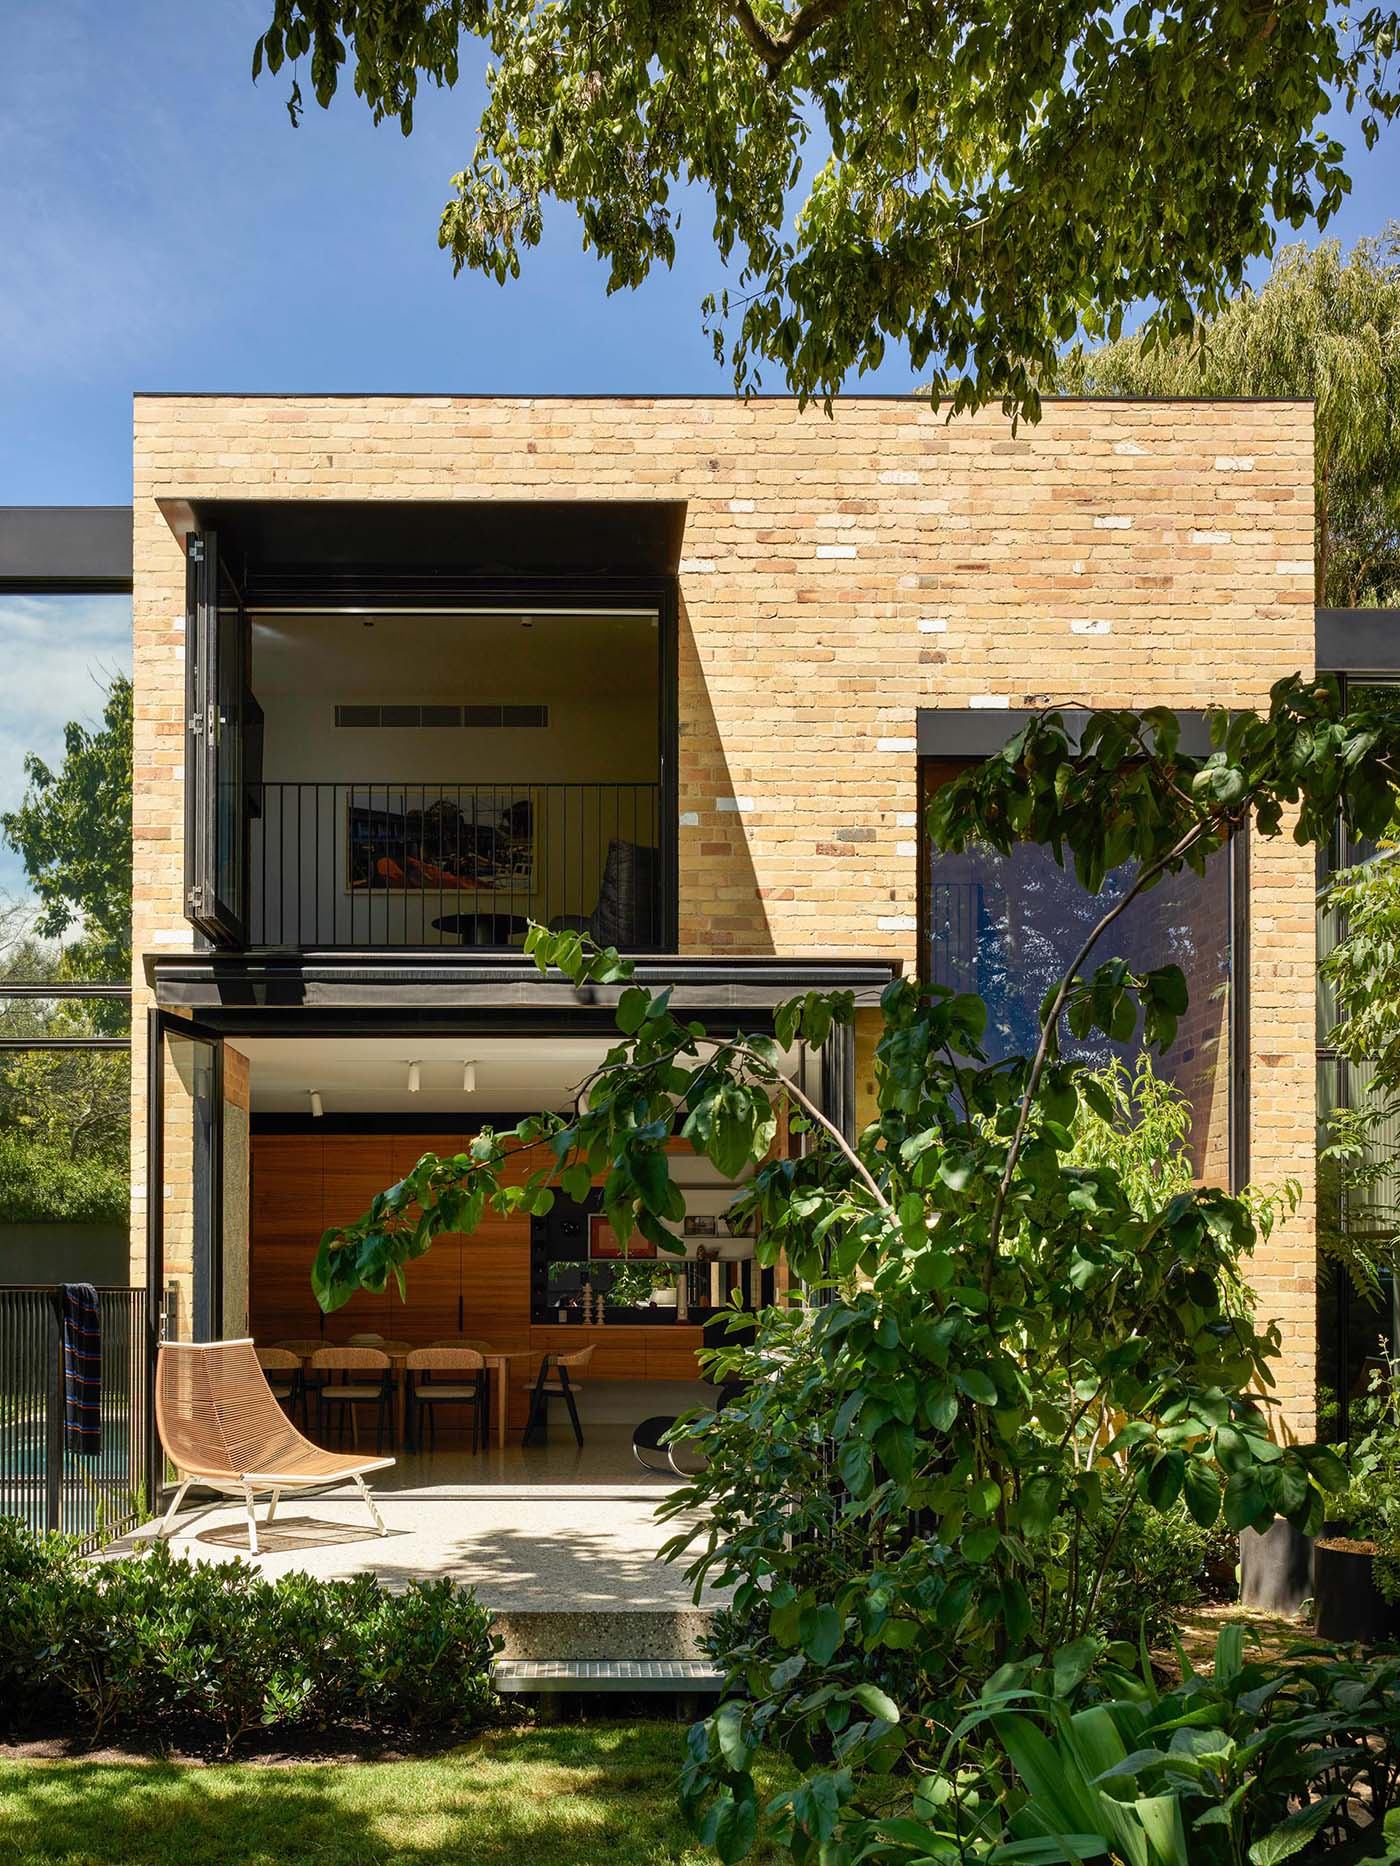 A modern home with indoor/outdoor living spaces, has been built using recycled yellow brick.